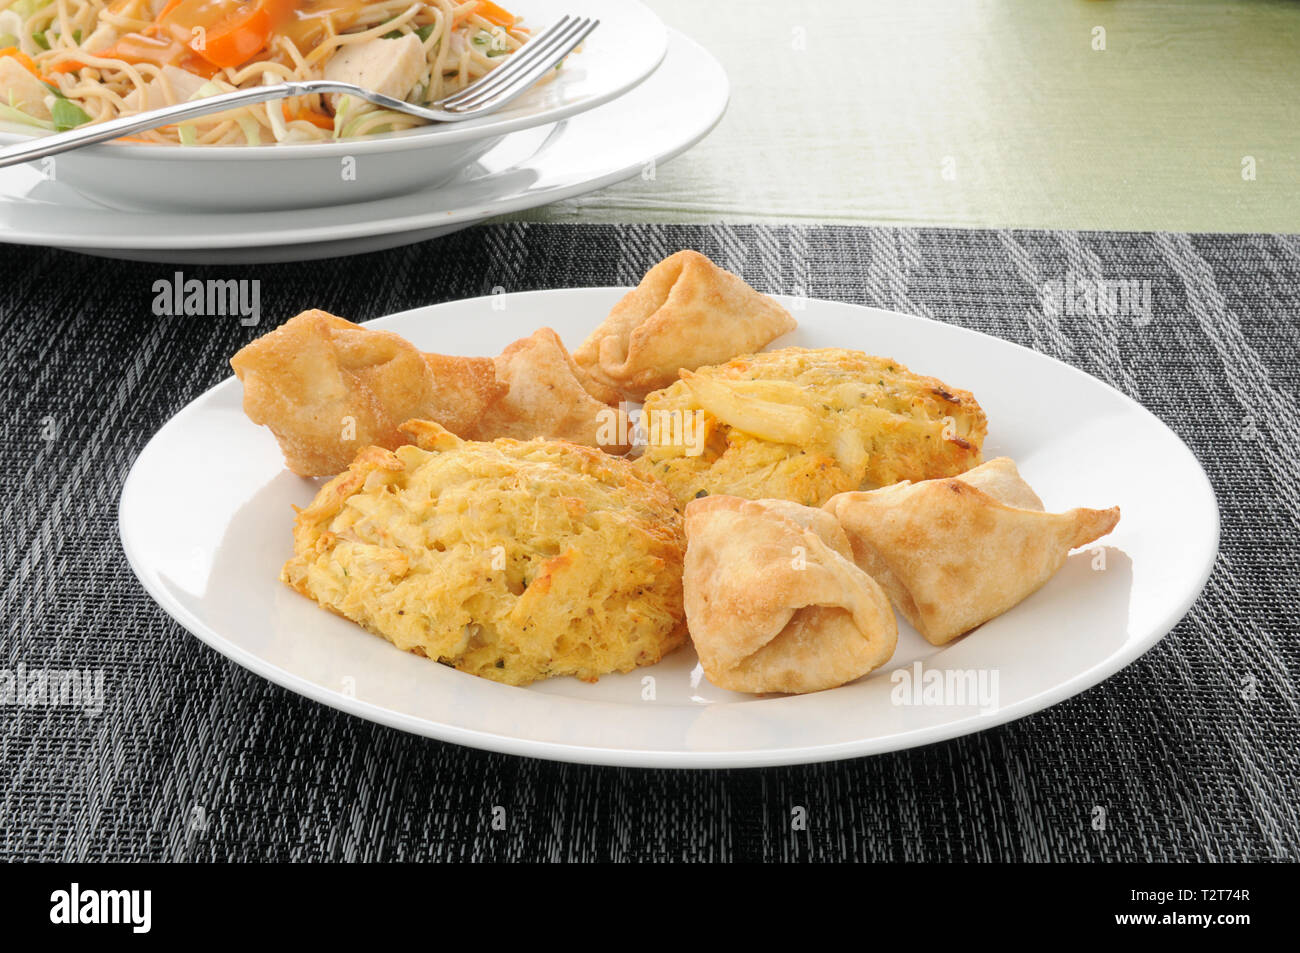 Appetizer plate of crab rangoon and crab cakes - Stock Image